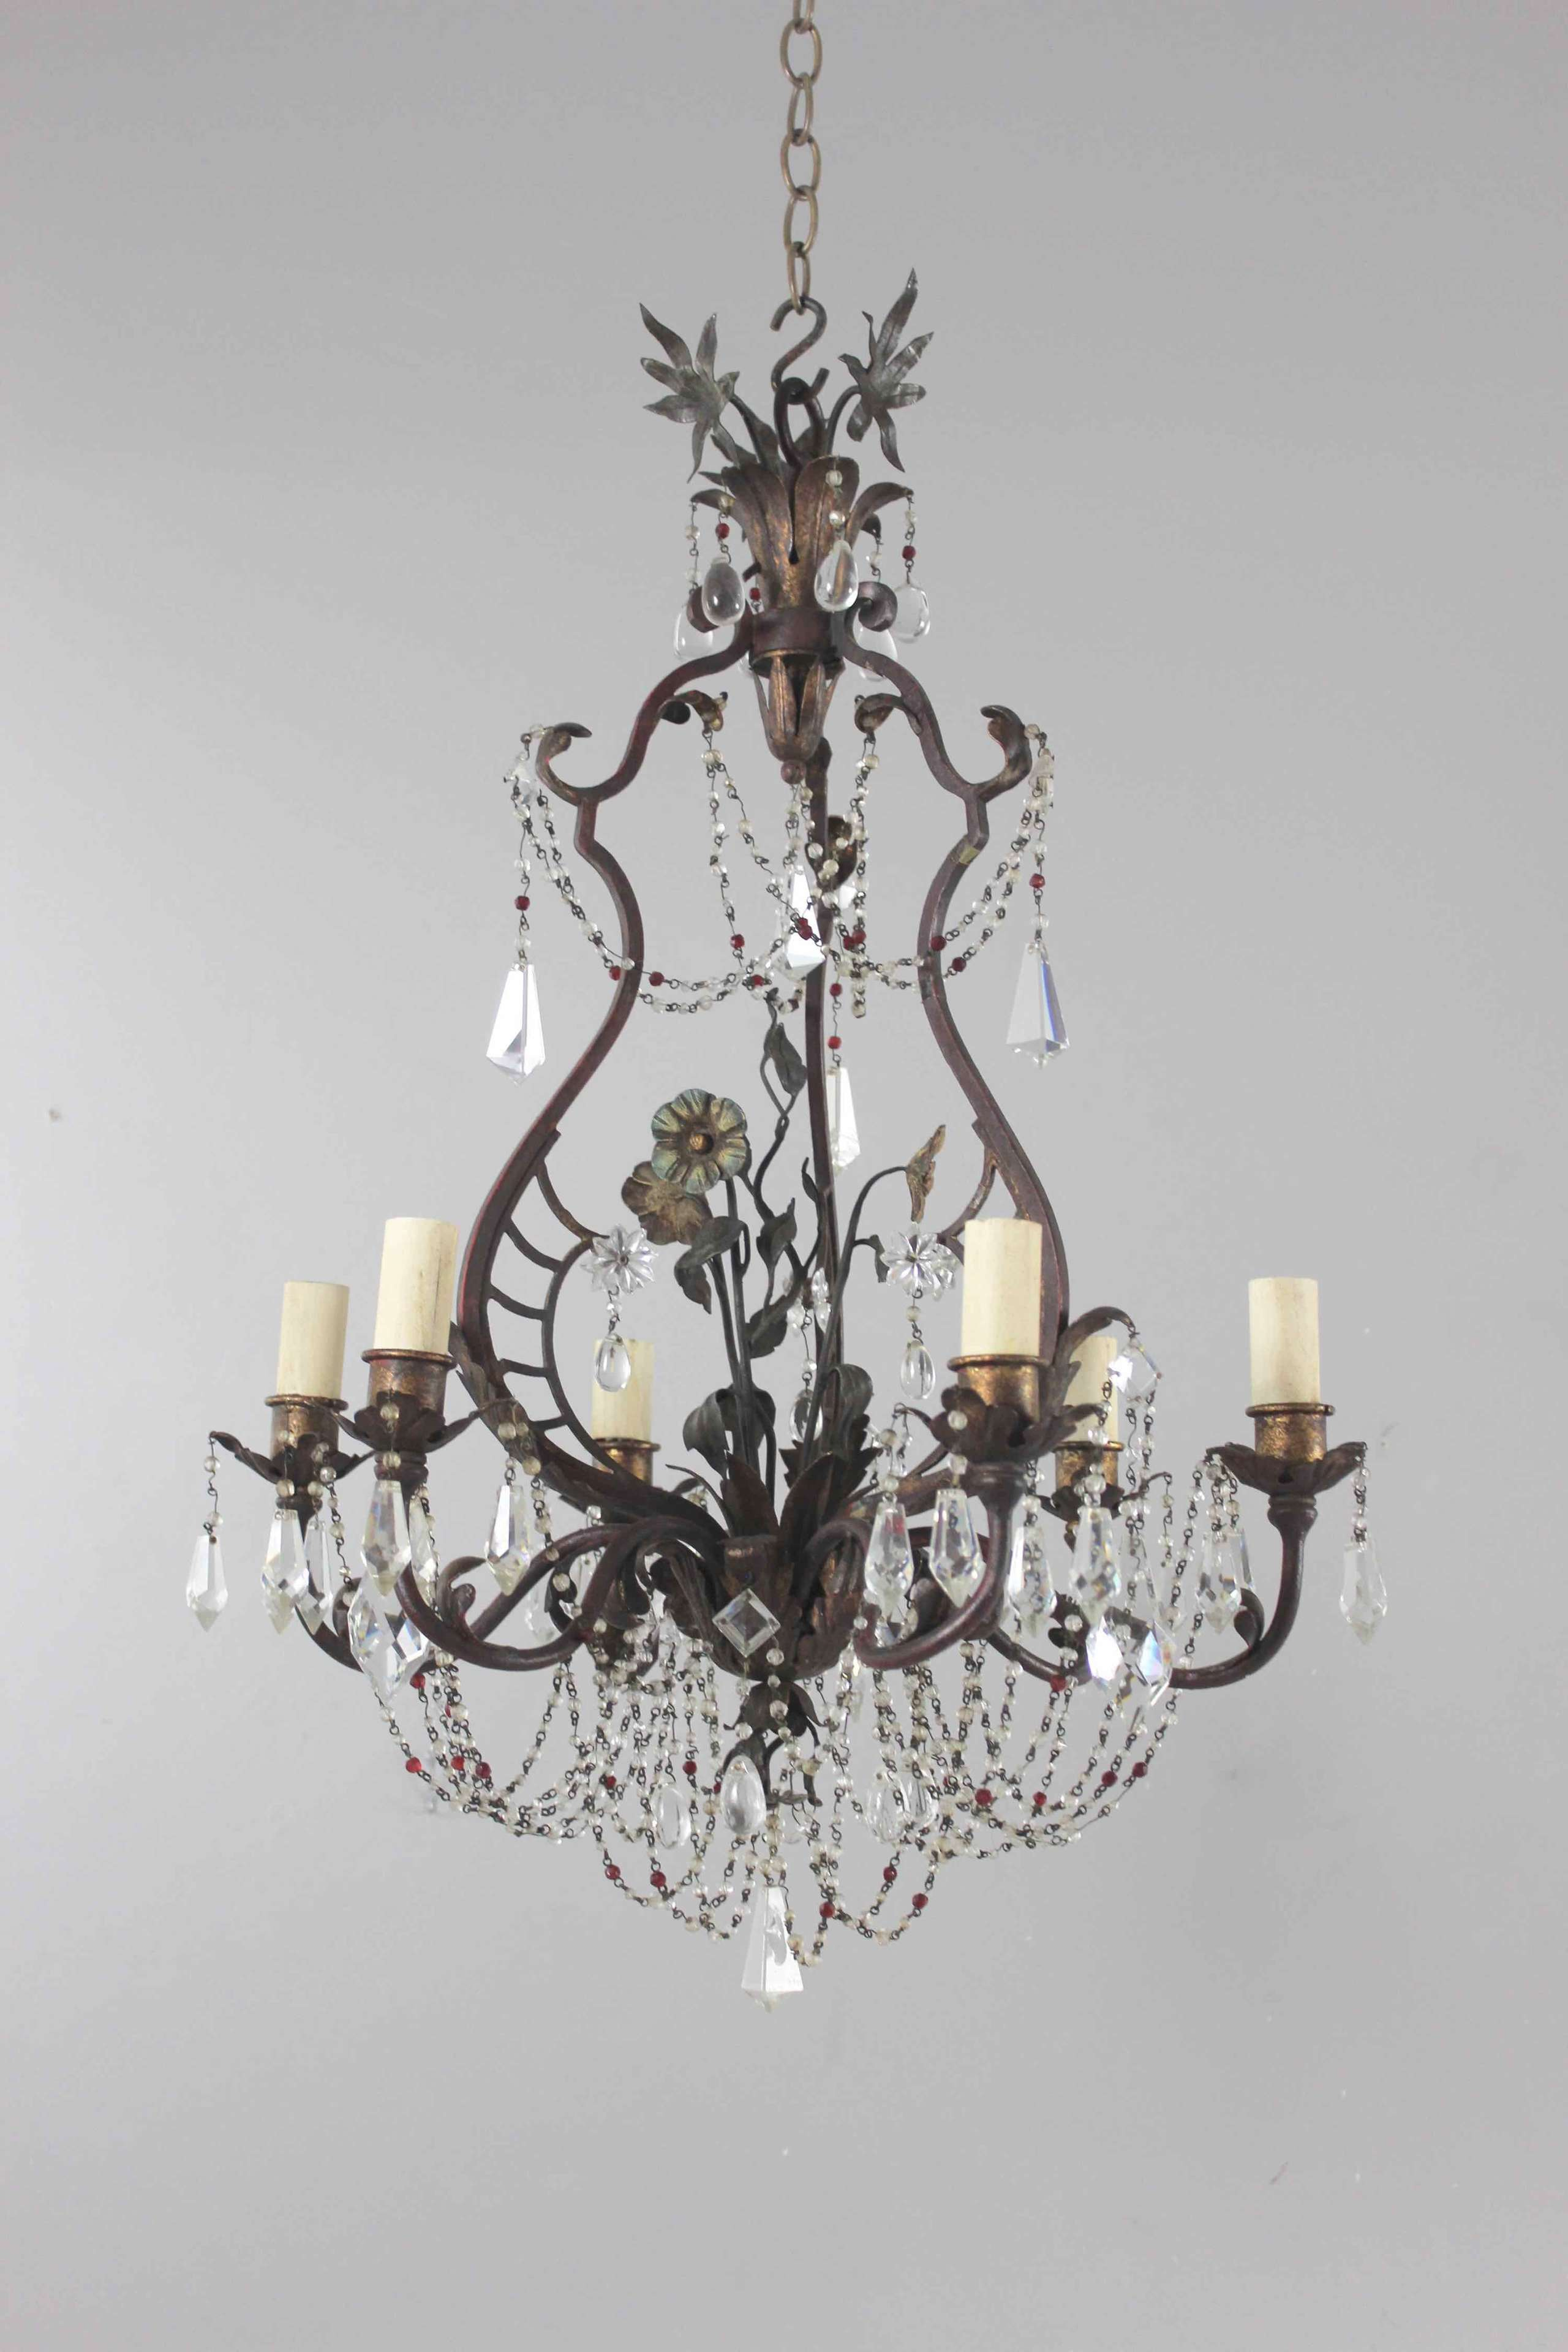 Italian polychrome and beaded antique chandelier